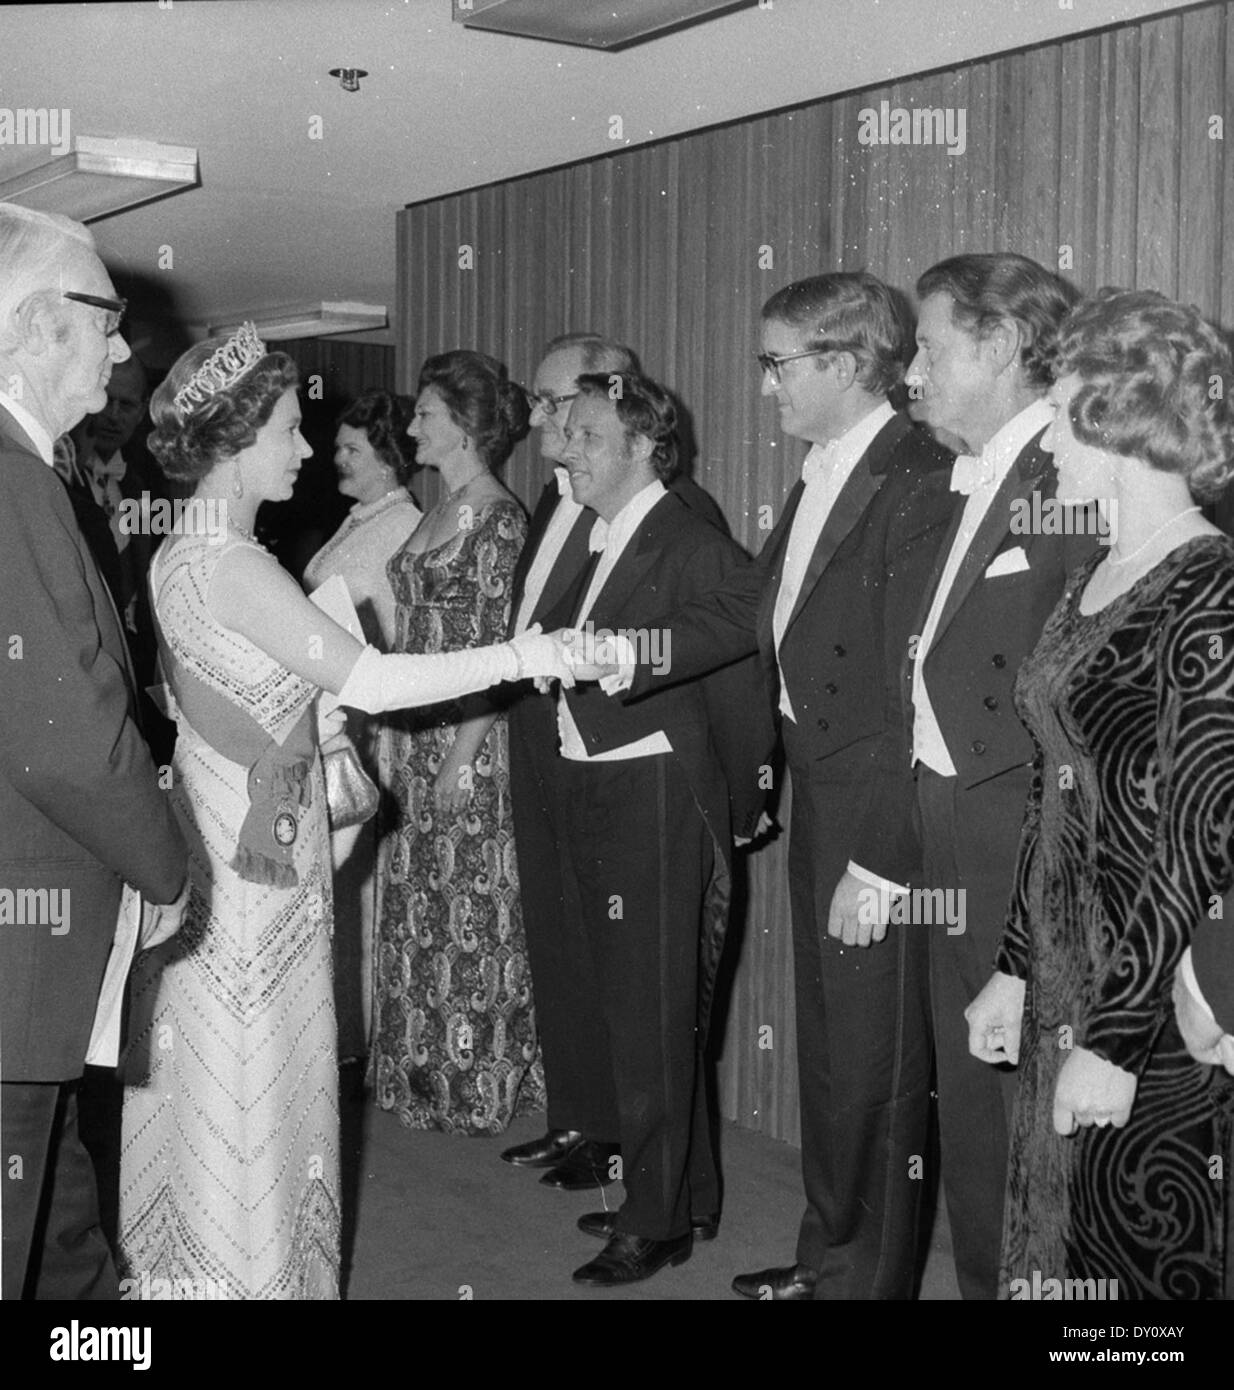 Queen Elizabeth attends the official opening performance (Beethoven's 9th Symphony) of the Sydney Opera House and meets the artists, 20 Oct 1973 / photographer Jack Hickson - Stock Image